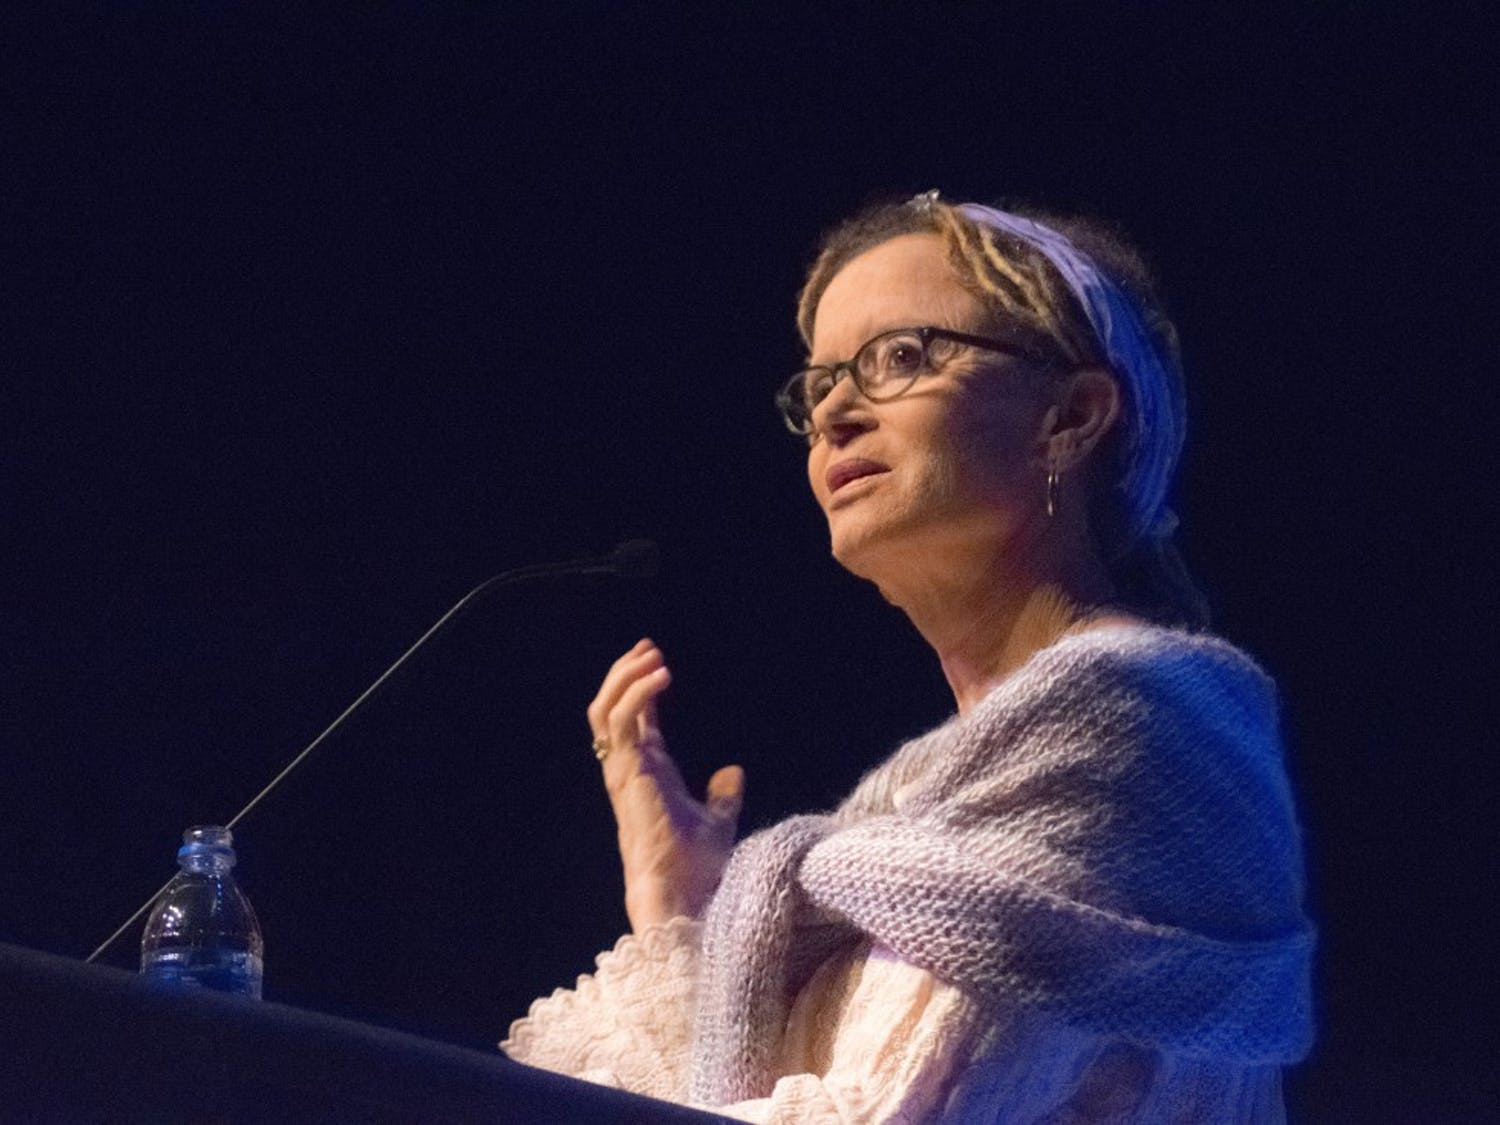 AnneLamott talked eloquently about navigating the difficult journey of self-forgiveness.